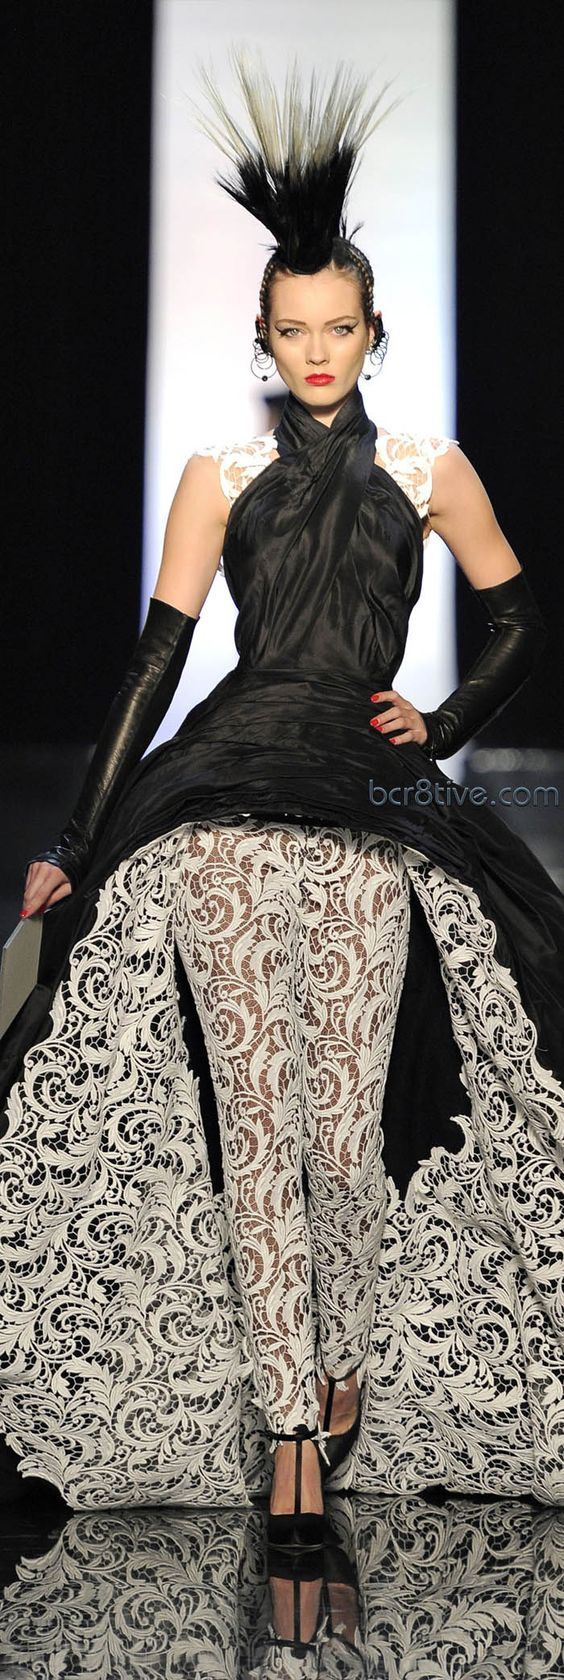 An example of haute couture: Jean Paul Gaultier Haute Couture Spring Summer 2011